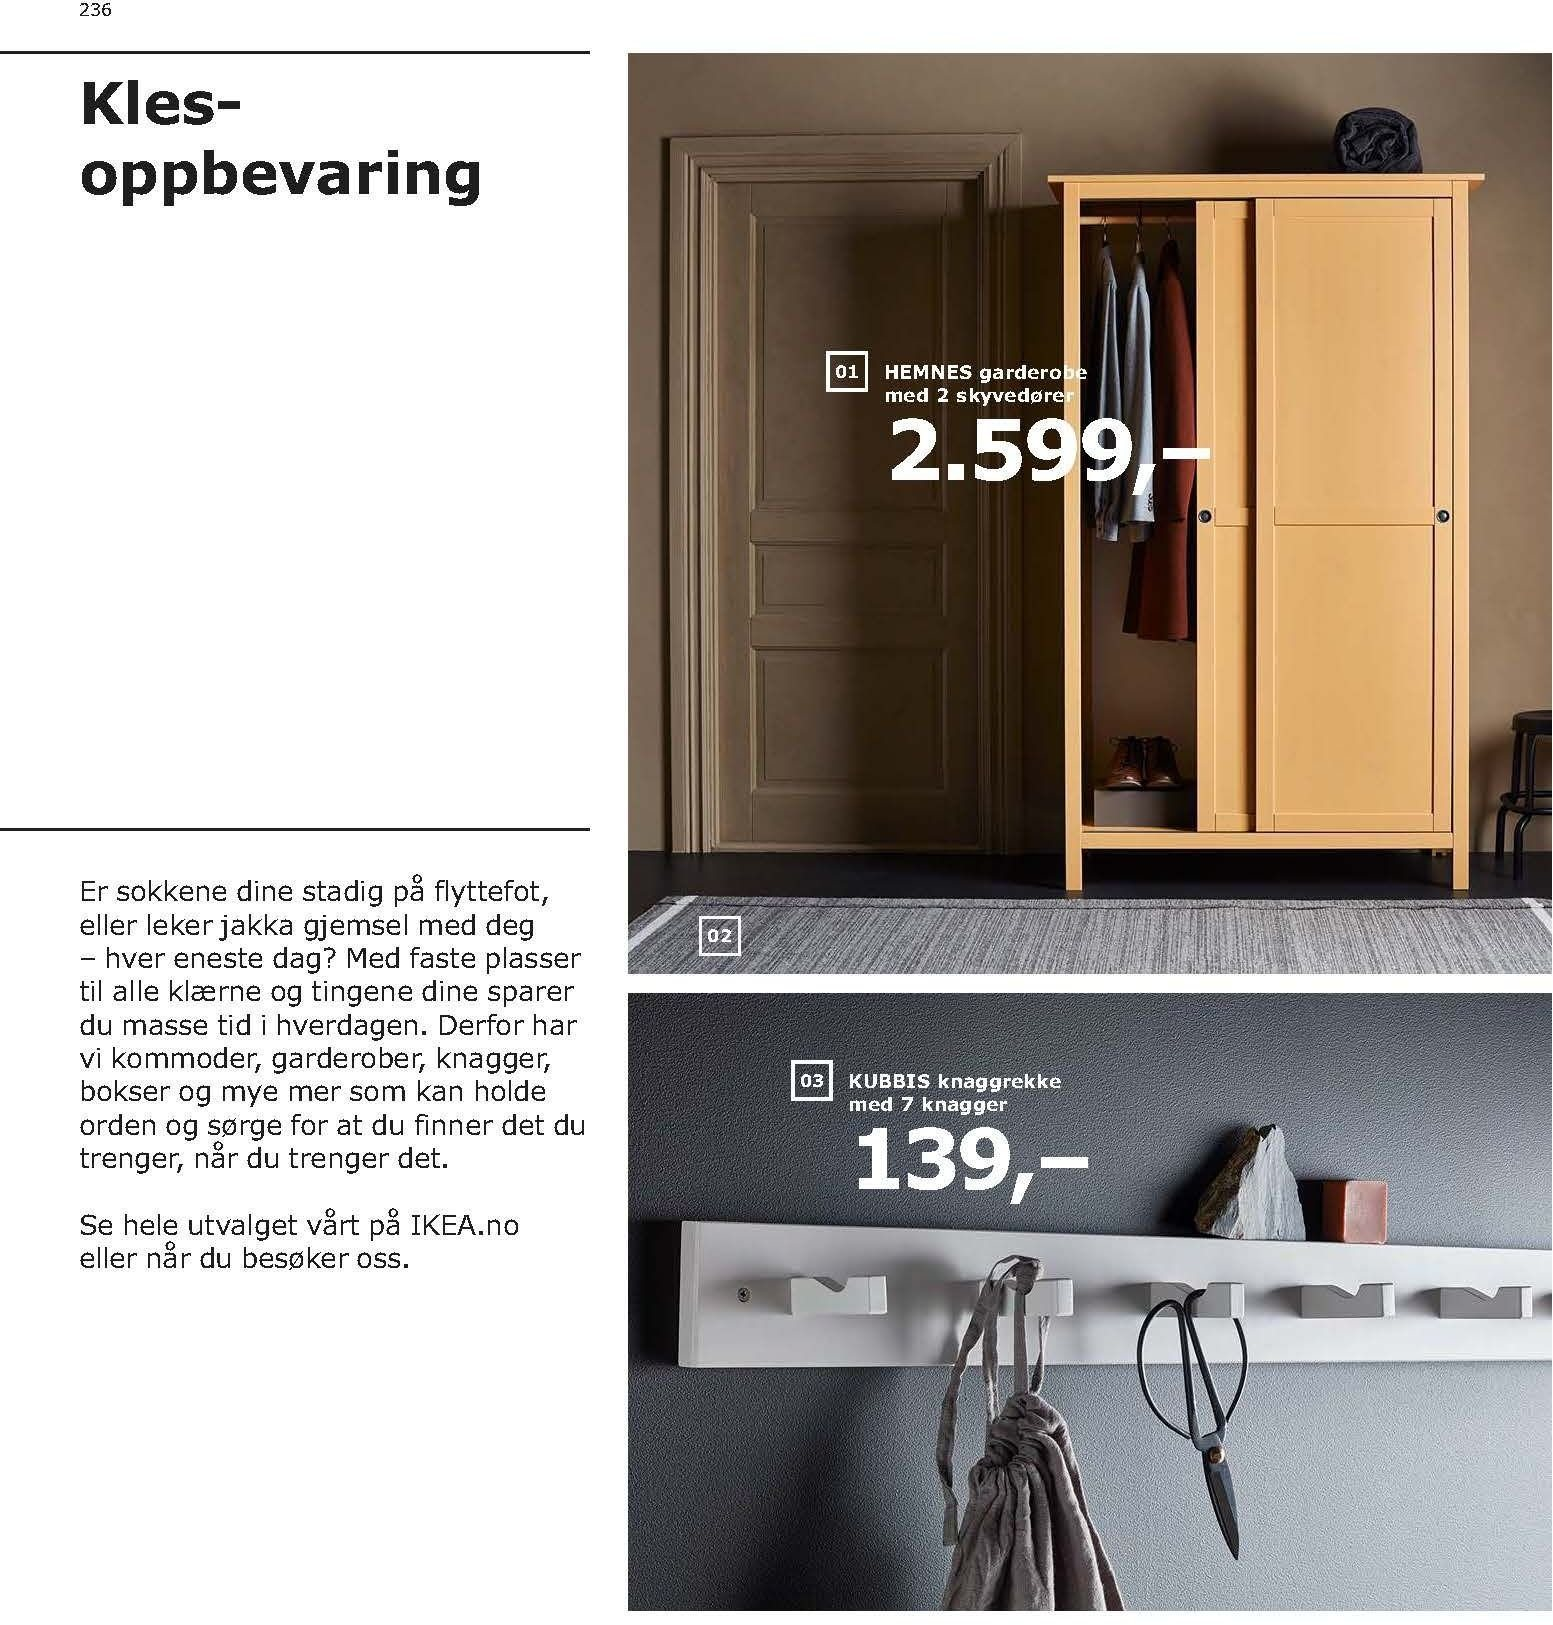 Kundeavis IKEA - 21.08.2018 - 11.08.2019. Side 236.